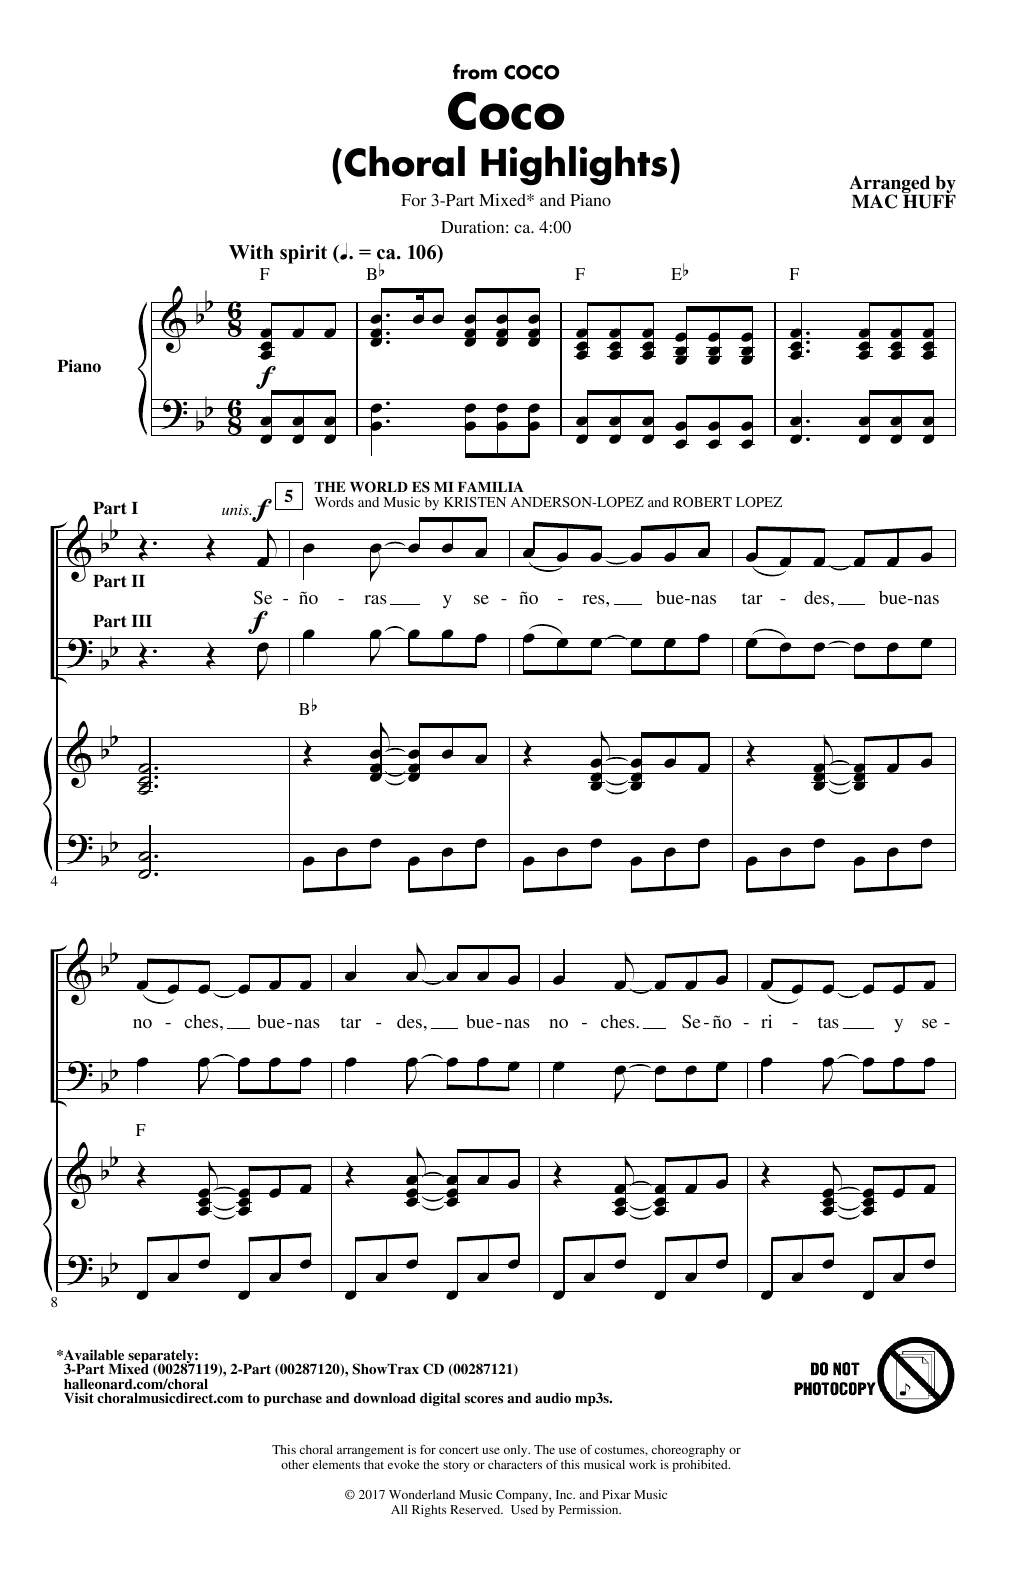 Mac Huff Coco (Choral Highlights) (arr. Mac Huff) sheet music notes and chords